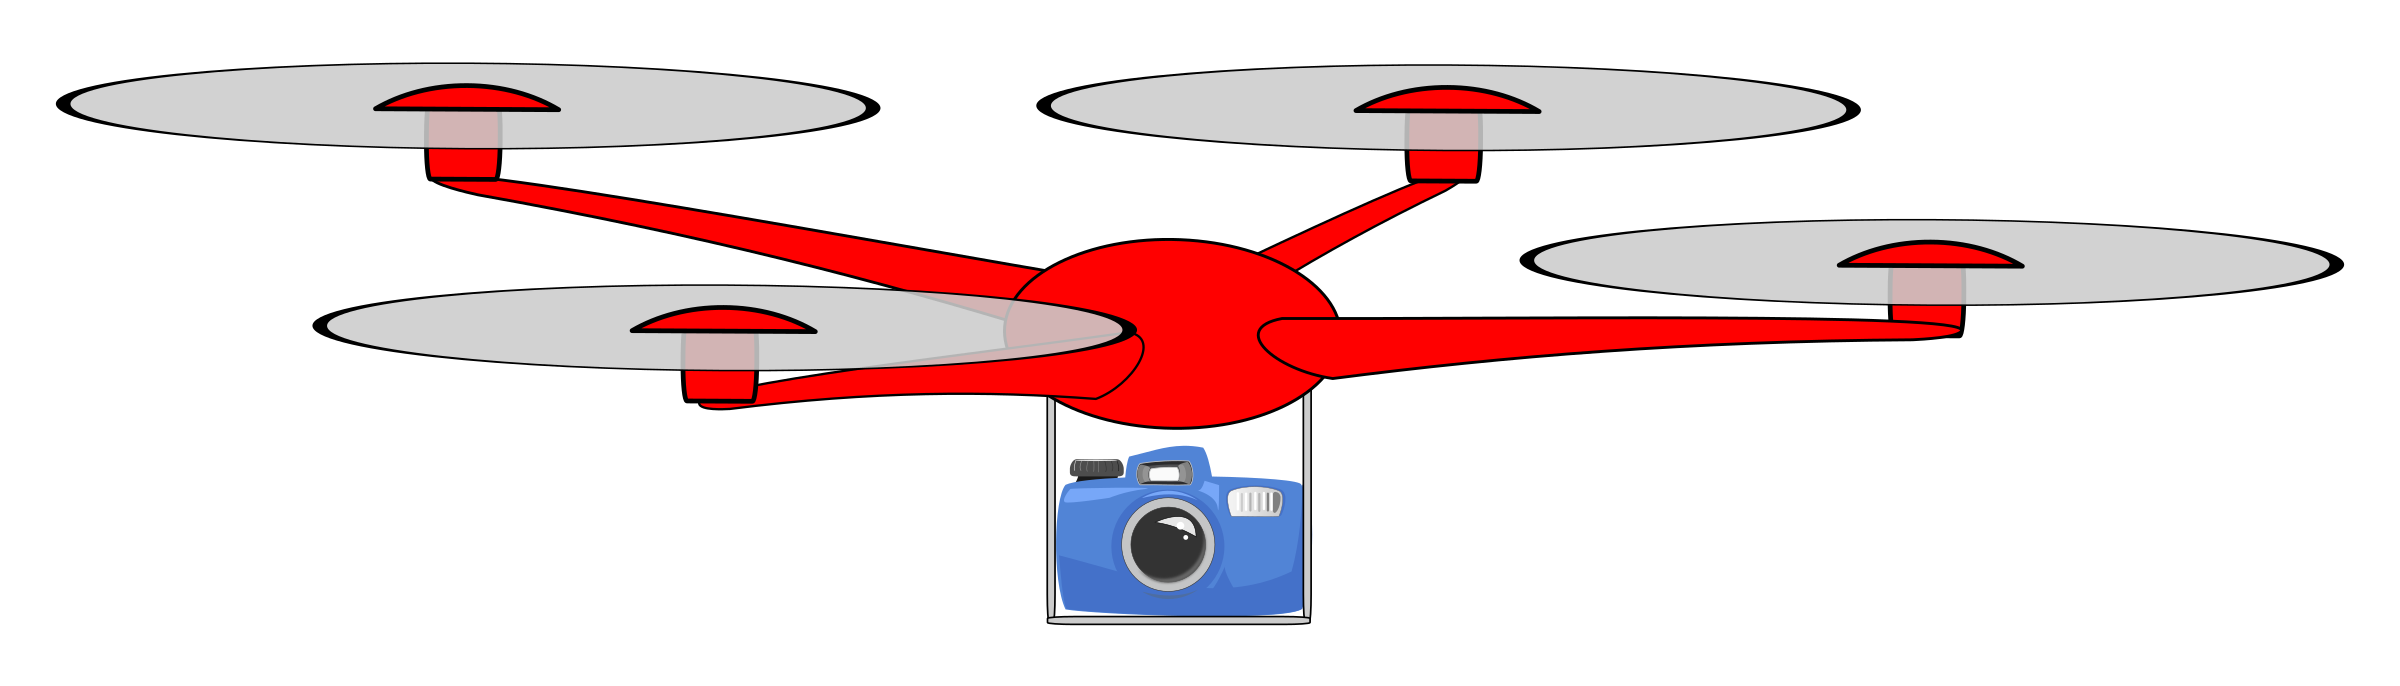 Airport clipart airport dubai. Simple drone with camera